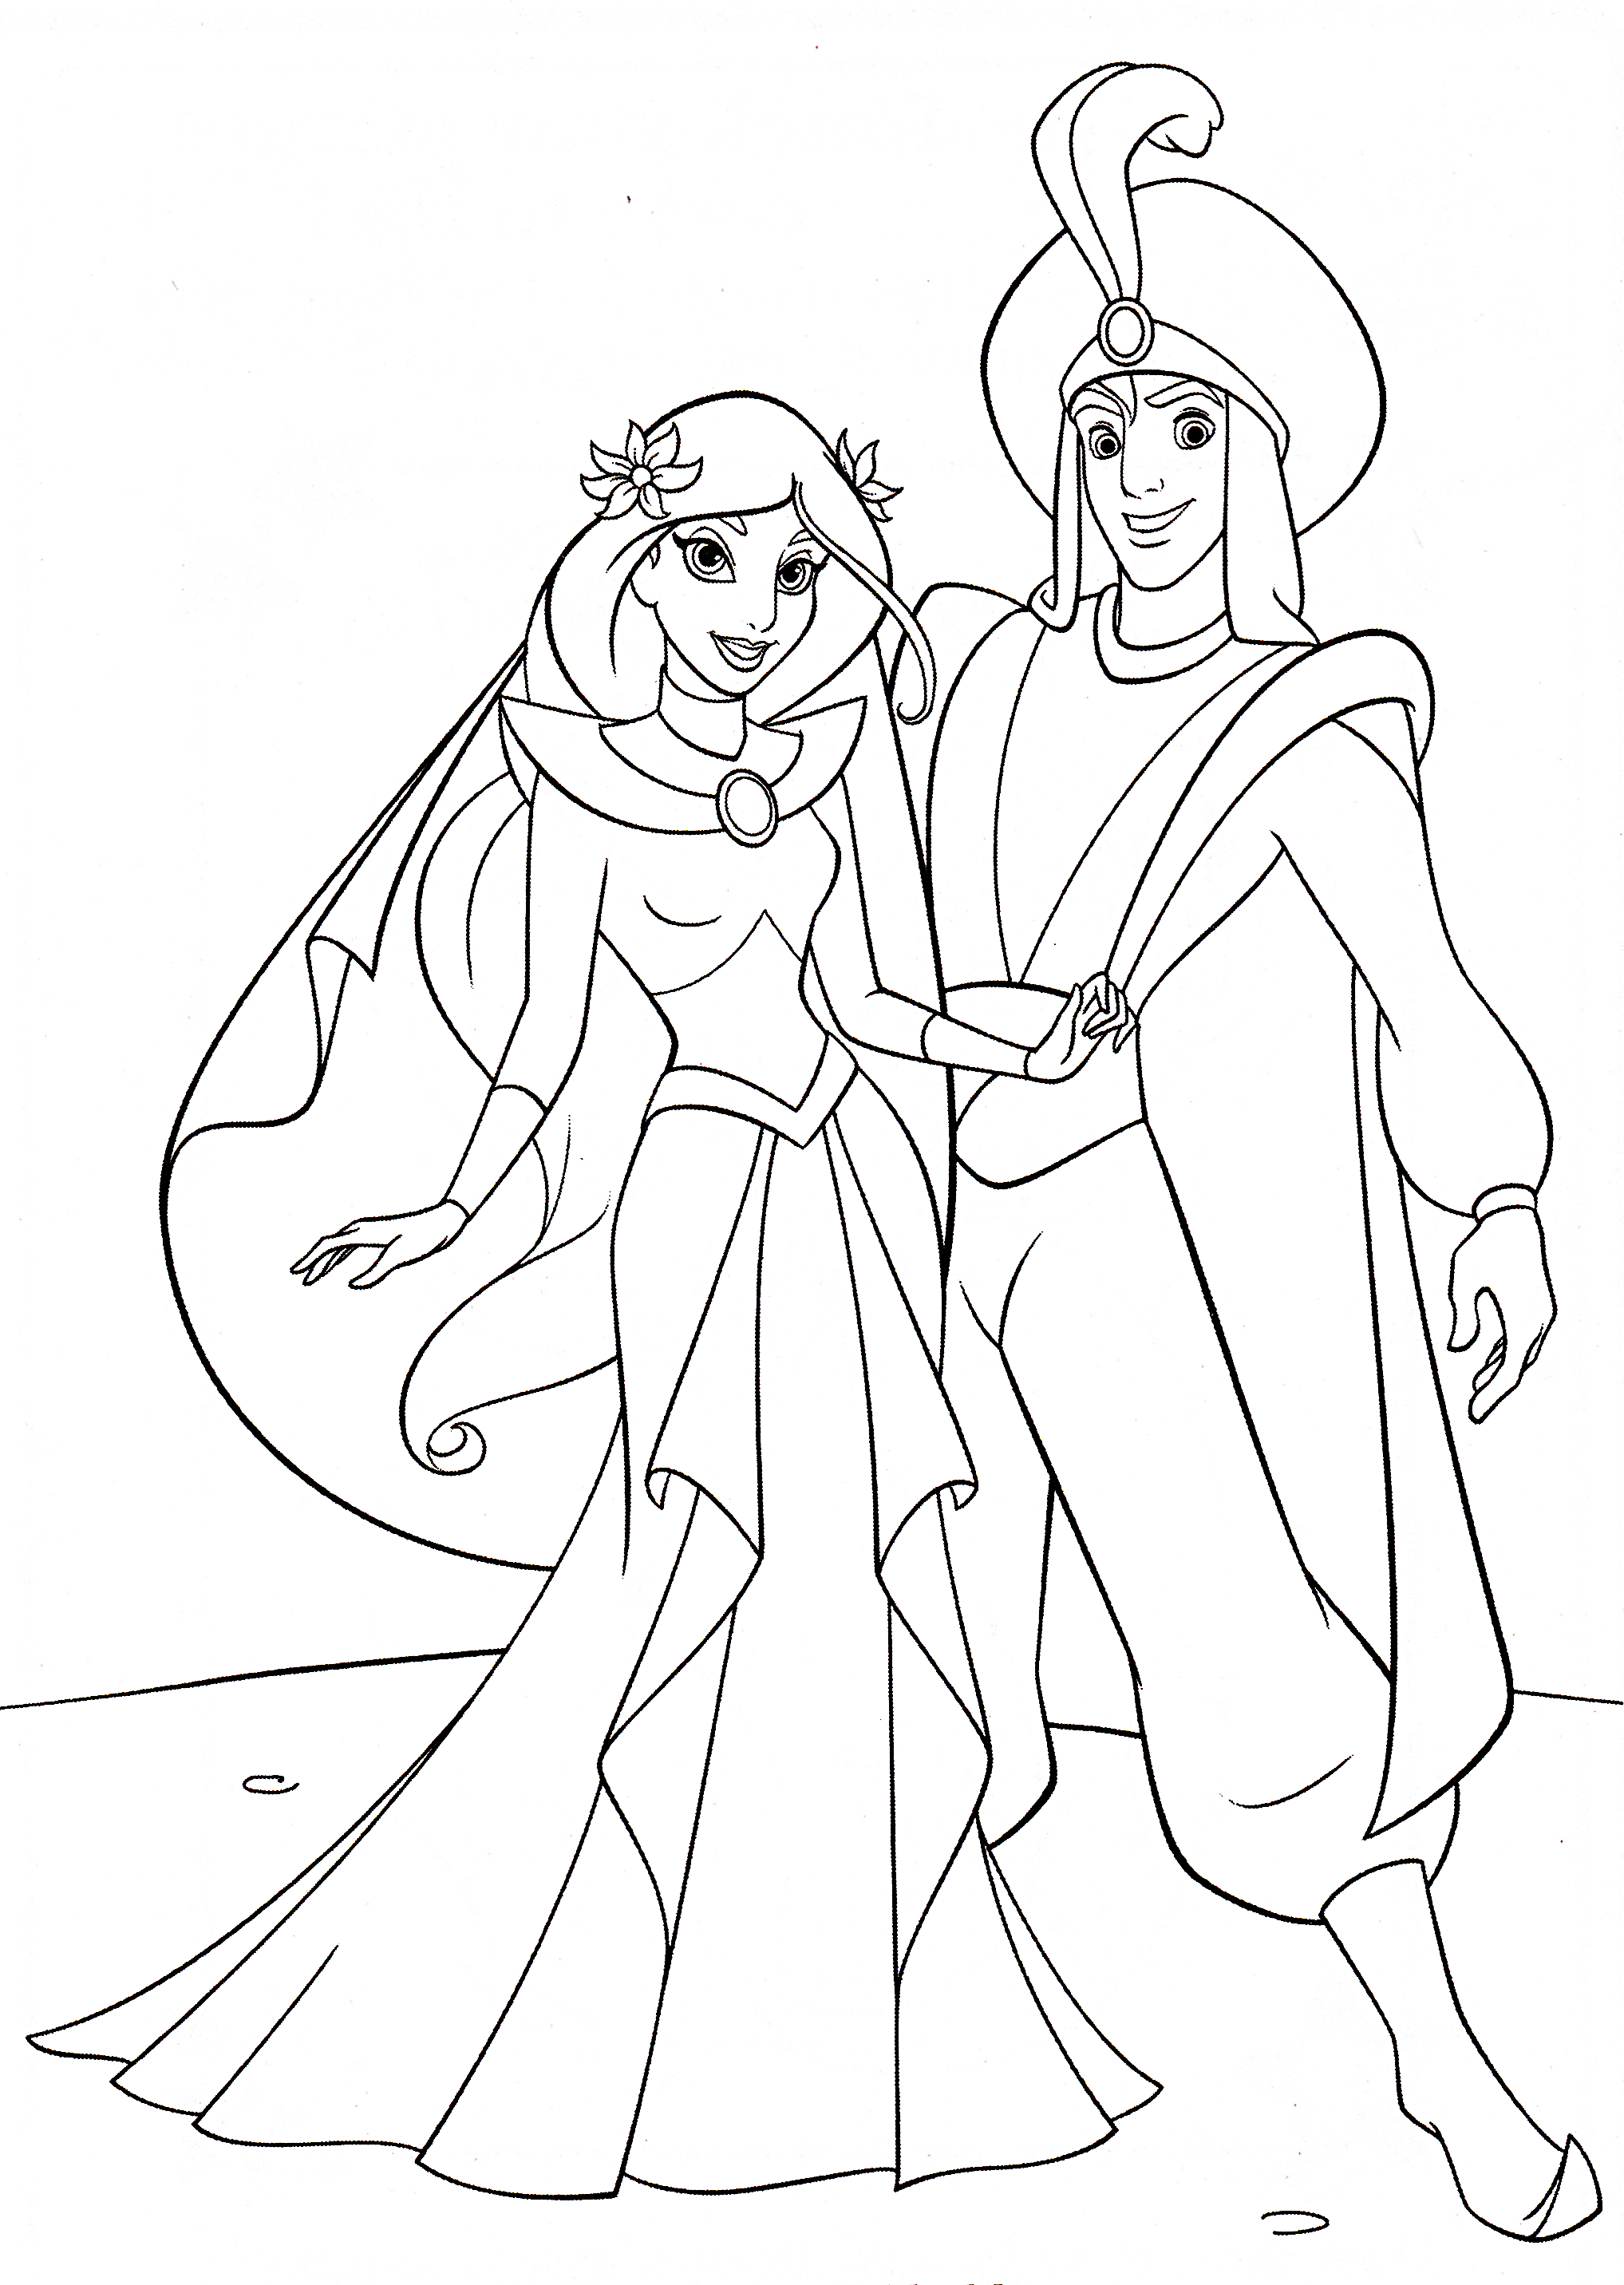 Aladdin Disney Ausmalbilder : Coloring Pages Aladdin Yahoo Image Search Results Coloring Pages